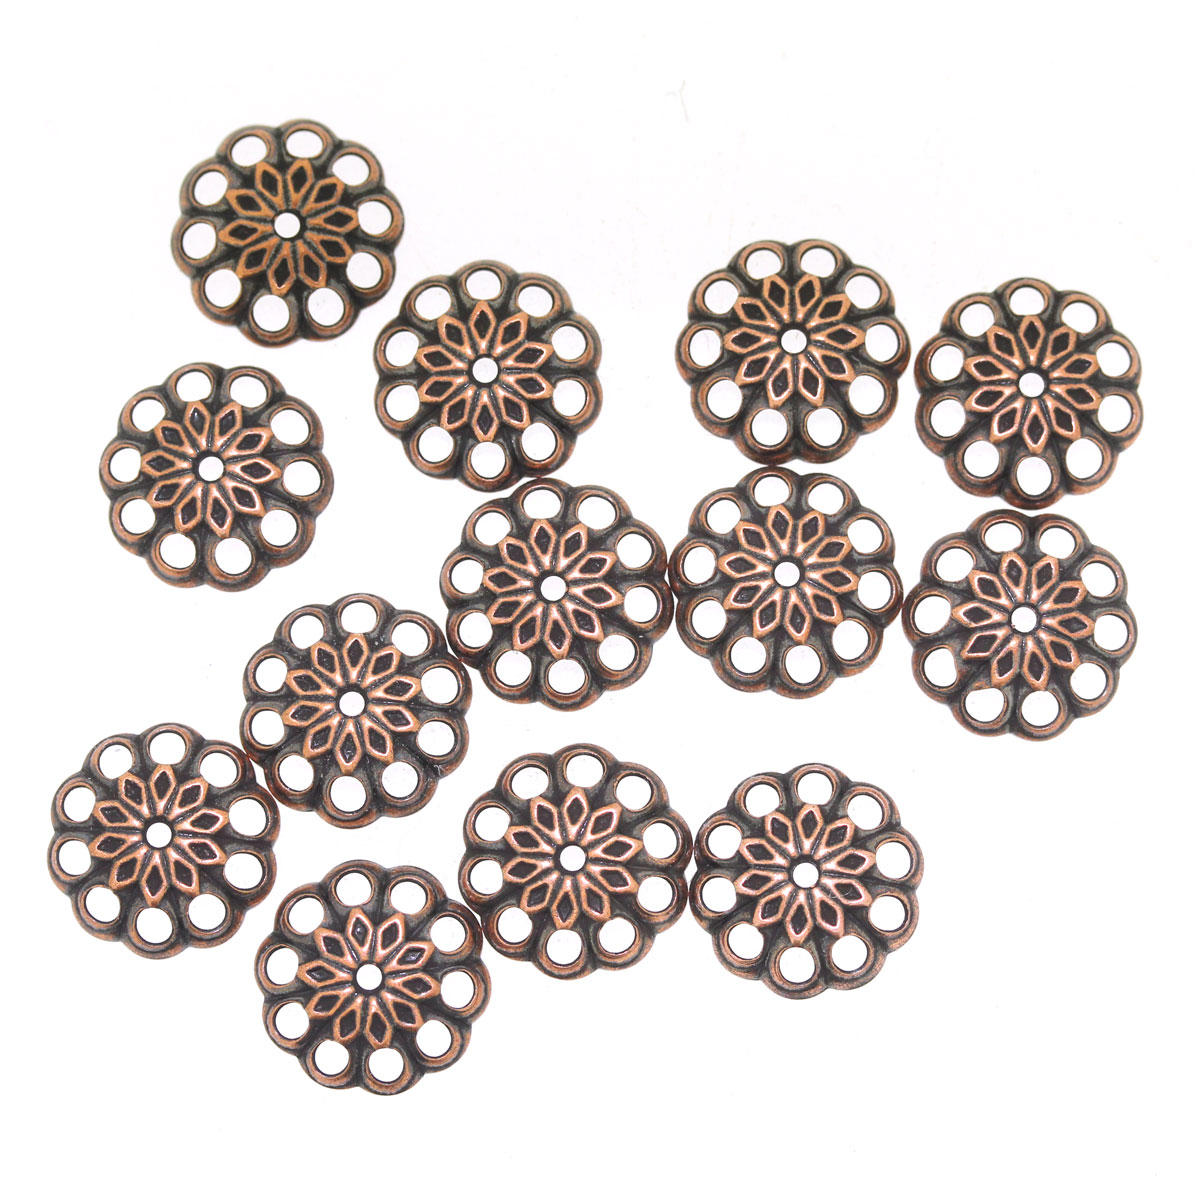 Antique Copper 10mm Bead Cap